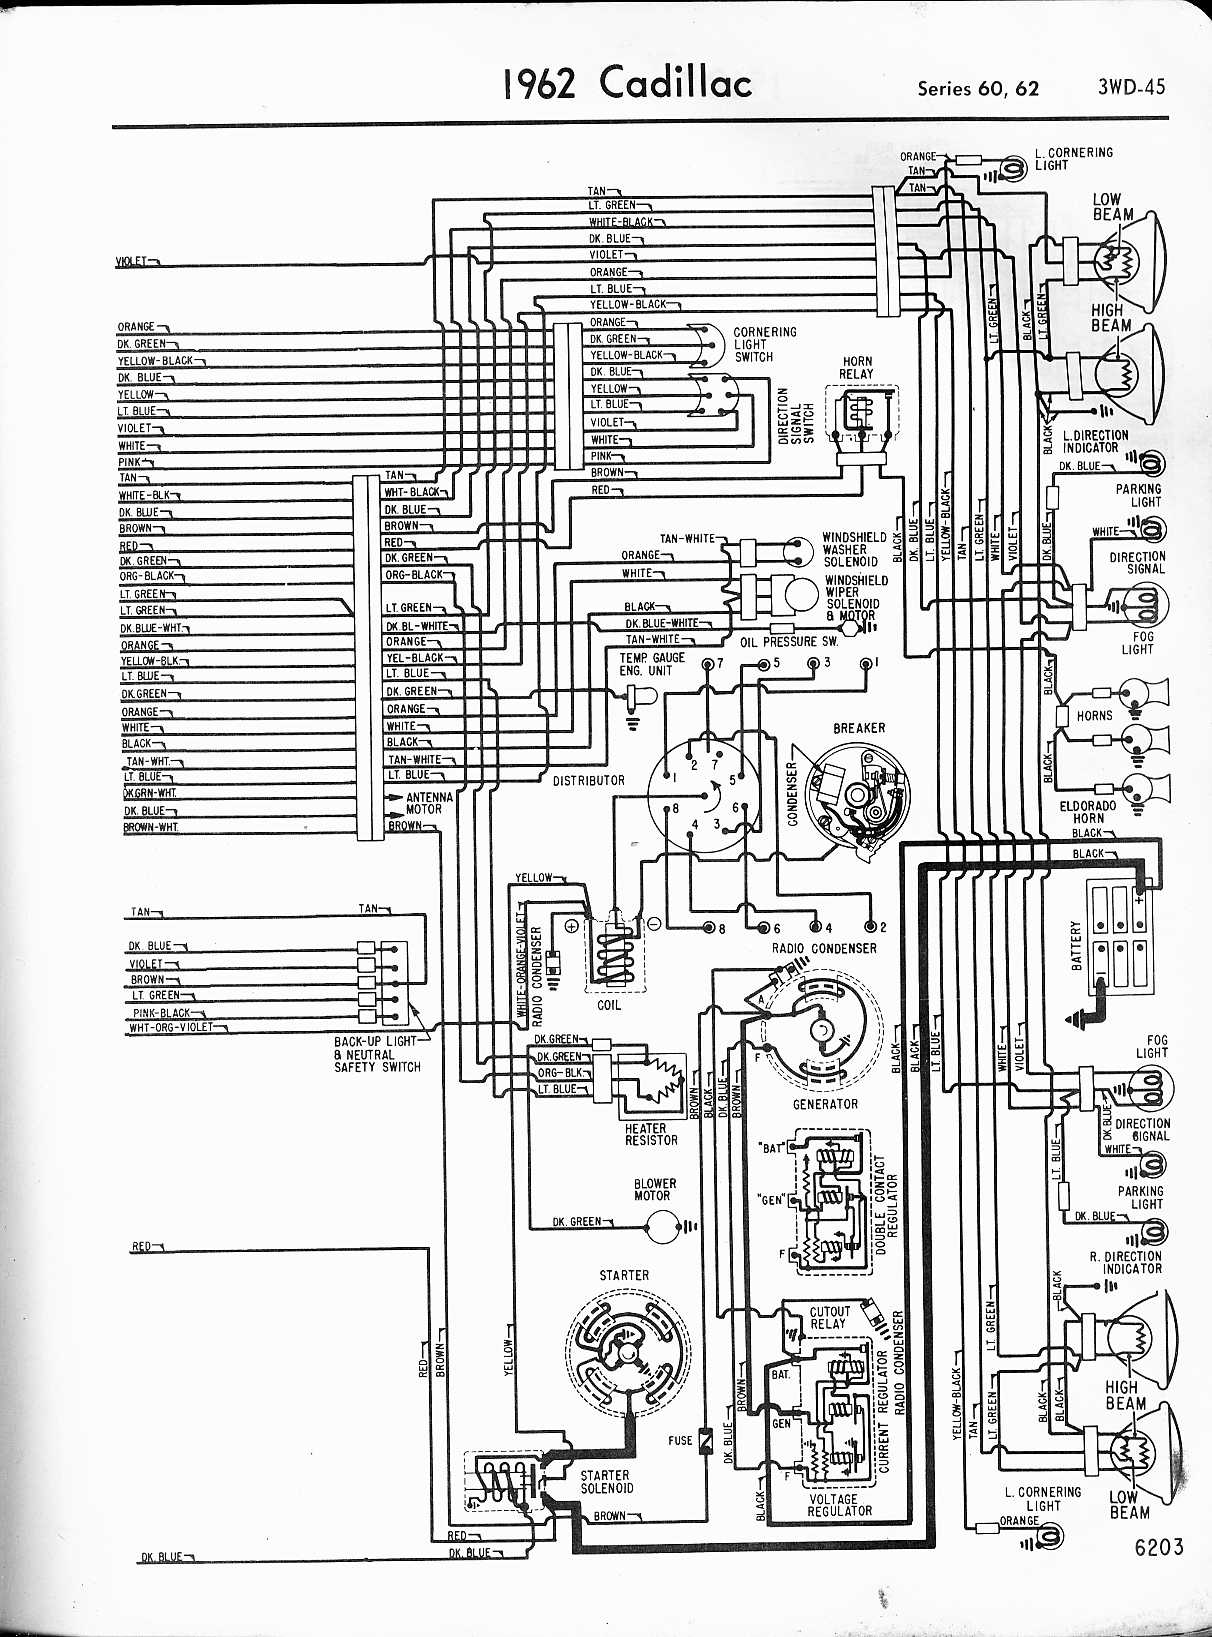 [SCHEMATICS_4NL]  Cadillac Wiring Diagrams: 1957-1965 | 1966 Cadillac Wiring Diagram |  | The Old Car Manual Project